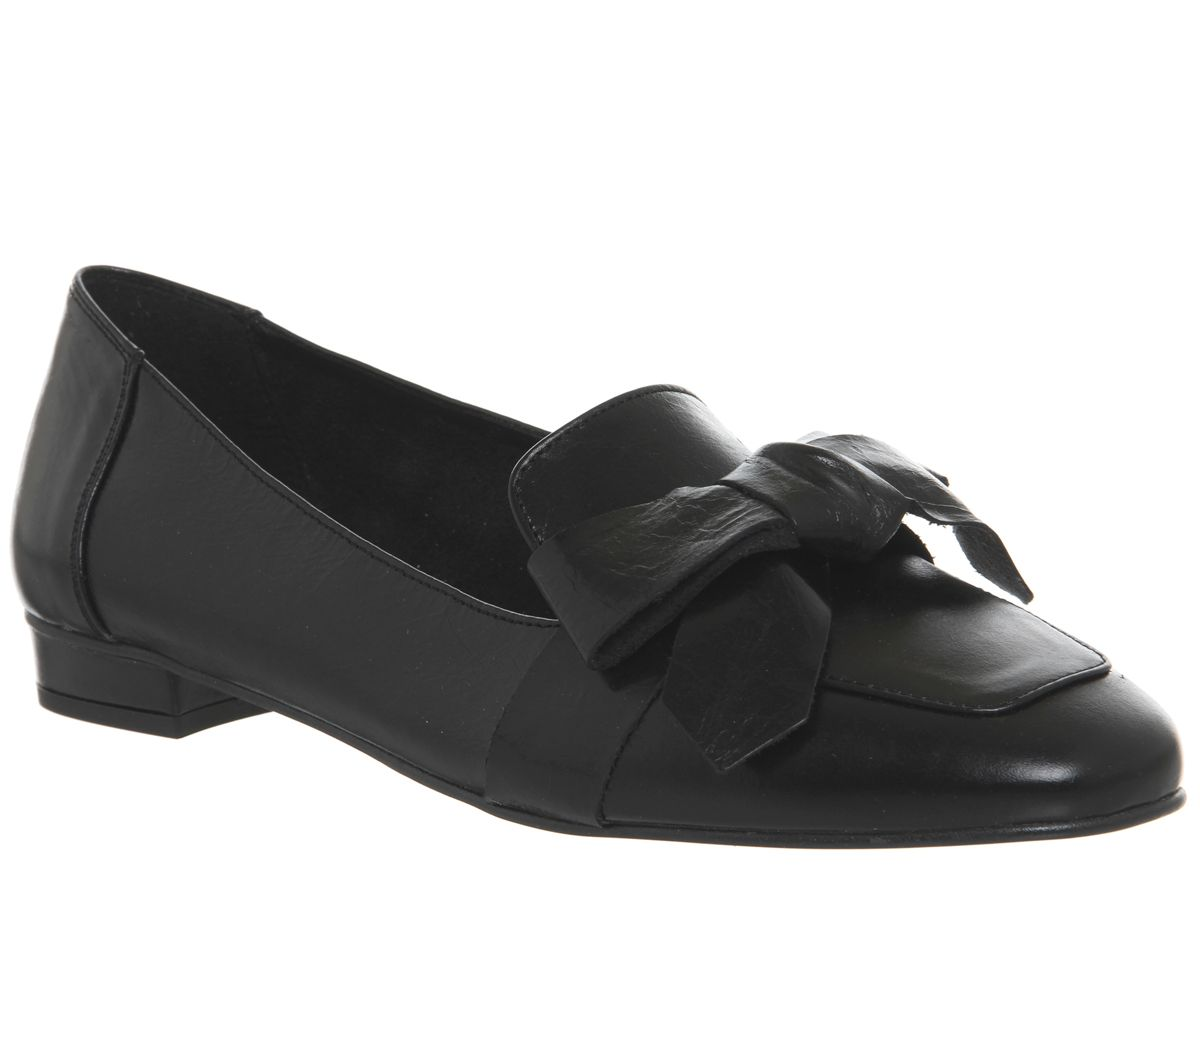 Office Friend Square Toe Bow Loafers, Black Leather